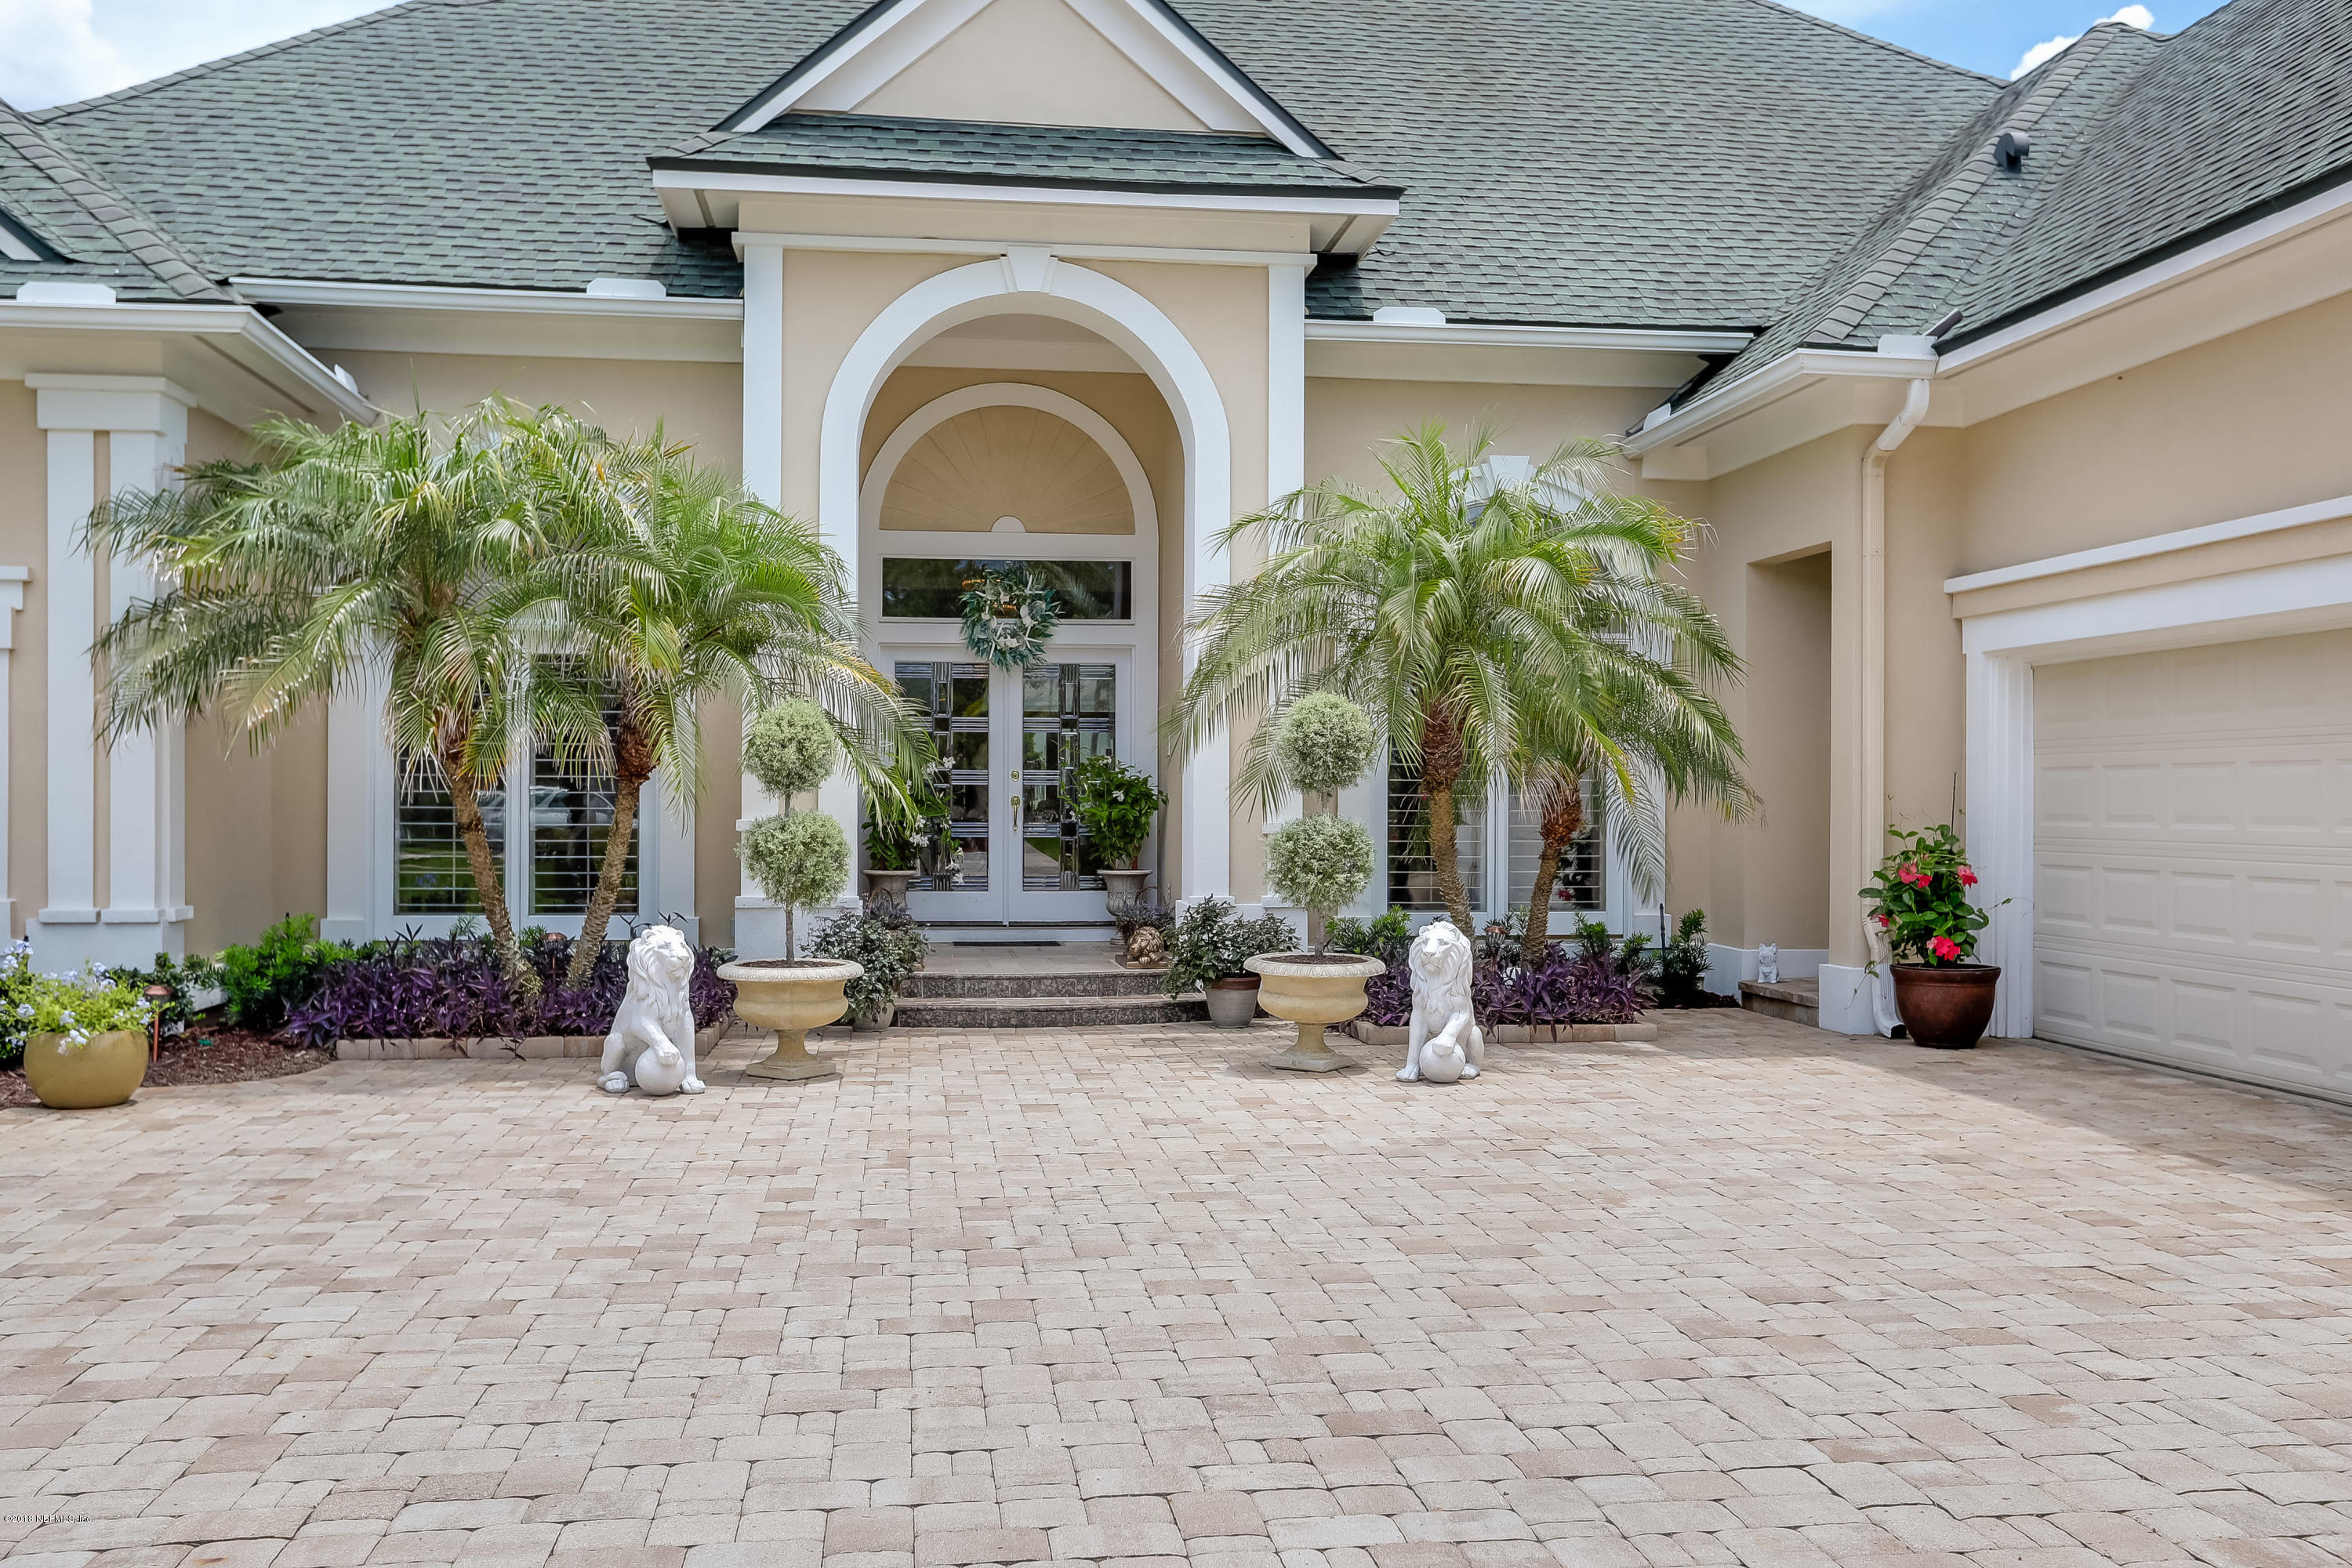 192 LAMPLIGHTER, PONTE VEDRA BEACH, FLORIDA 32082, 4 Bedrooms Bedrooms, ,4 BathroomsBathrooms,Residential - single family,For sale,LAMPLIGHTER,949312